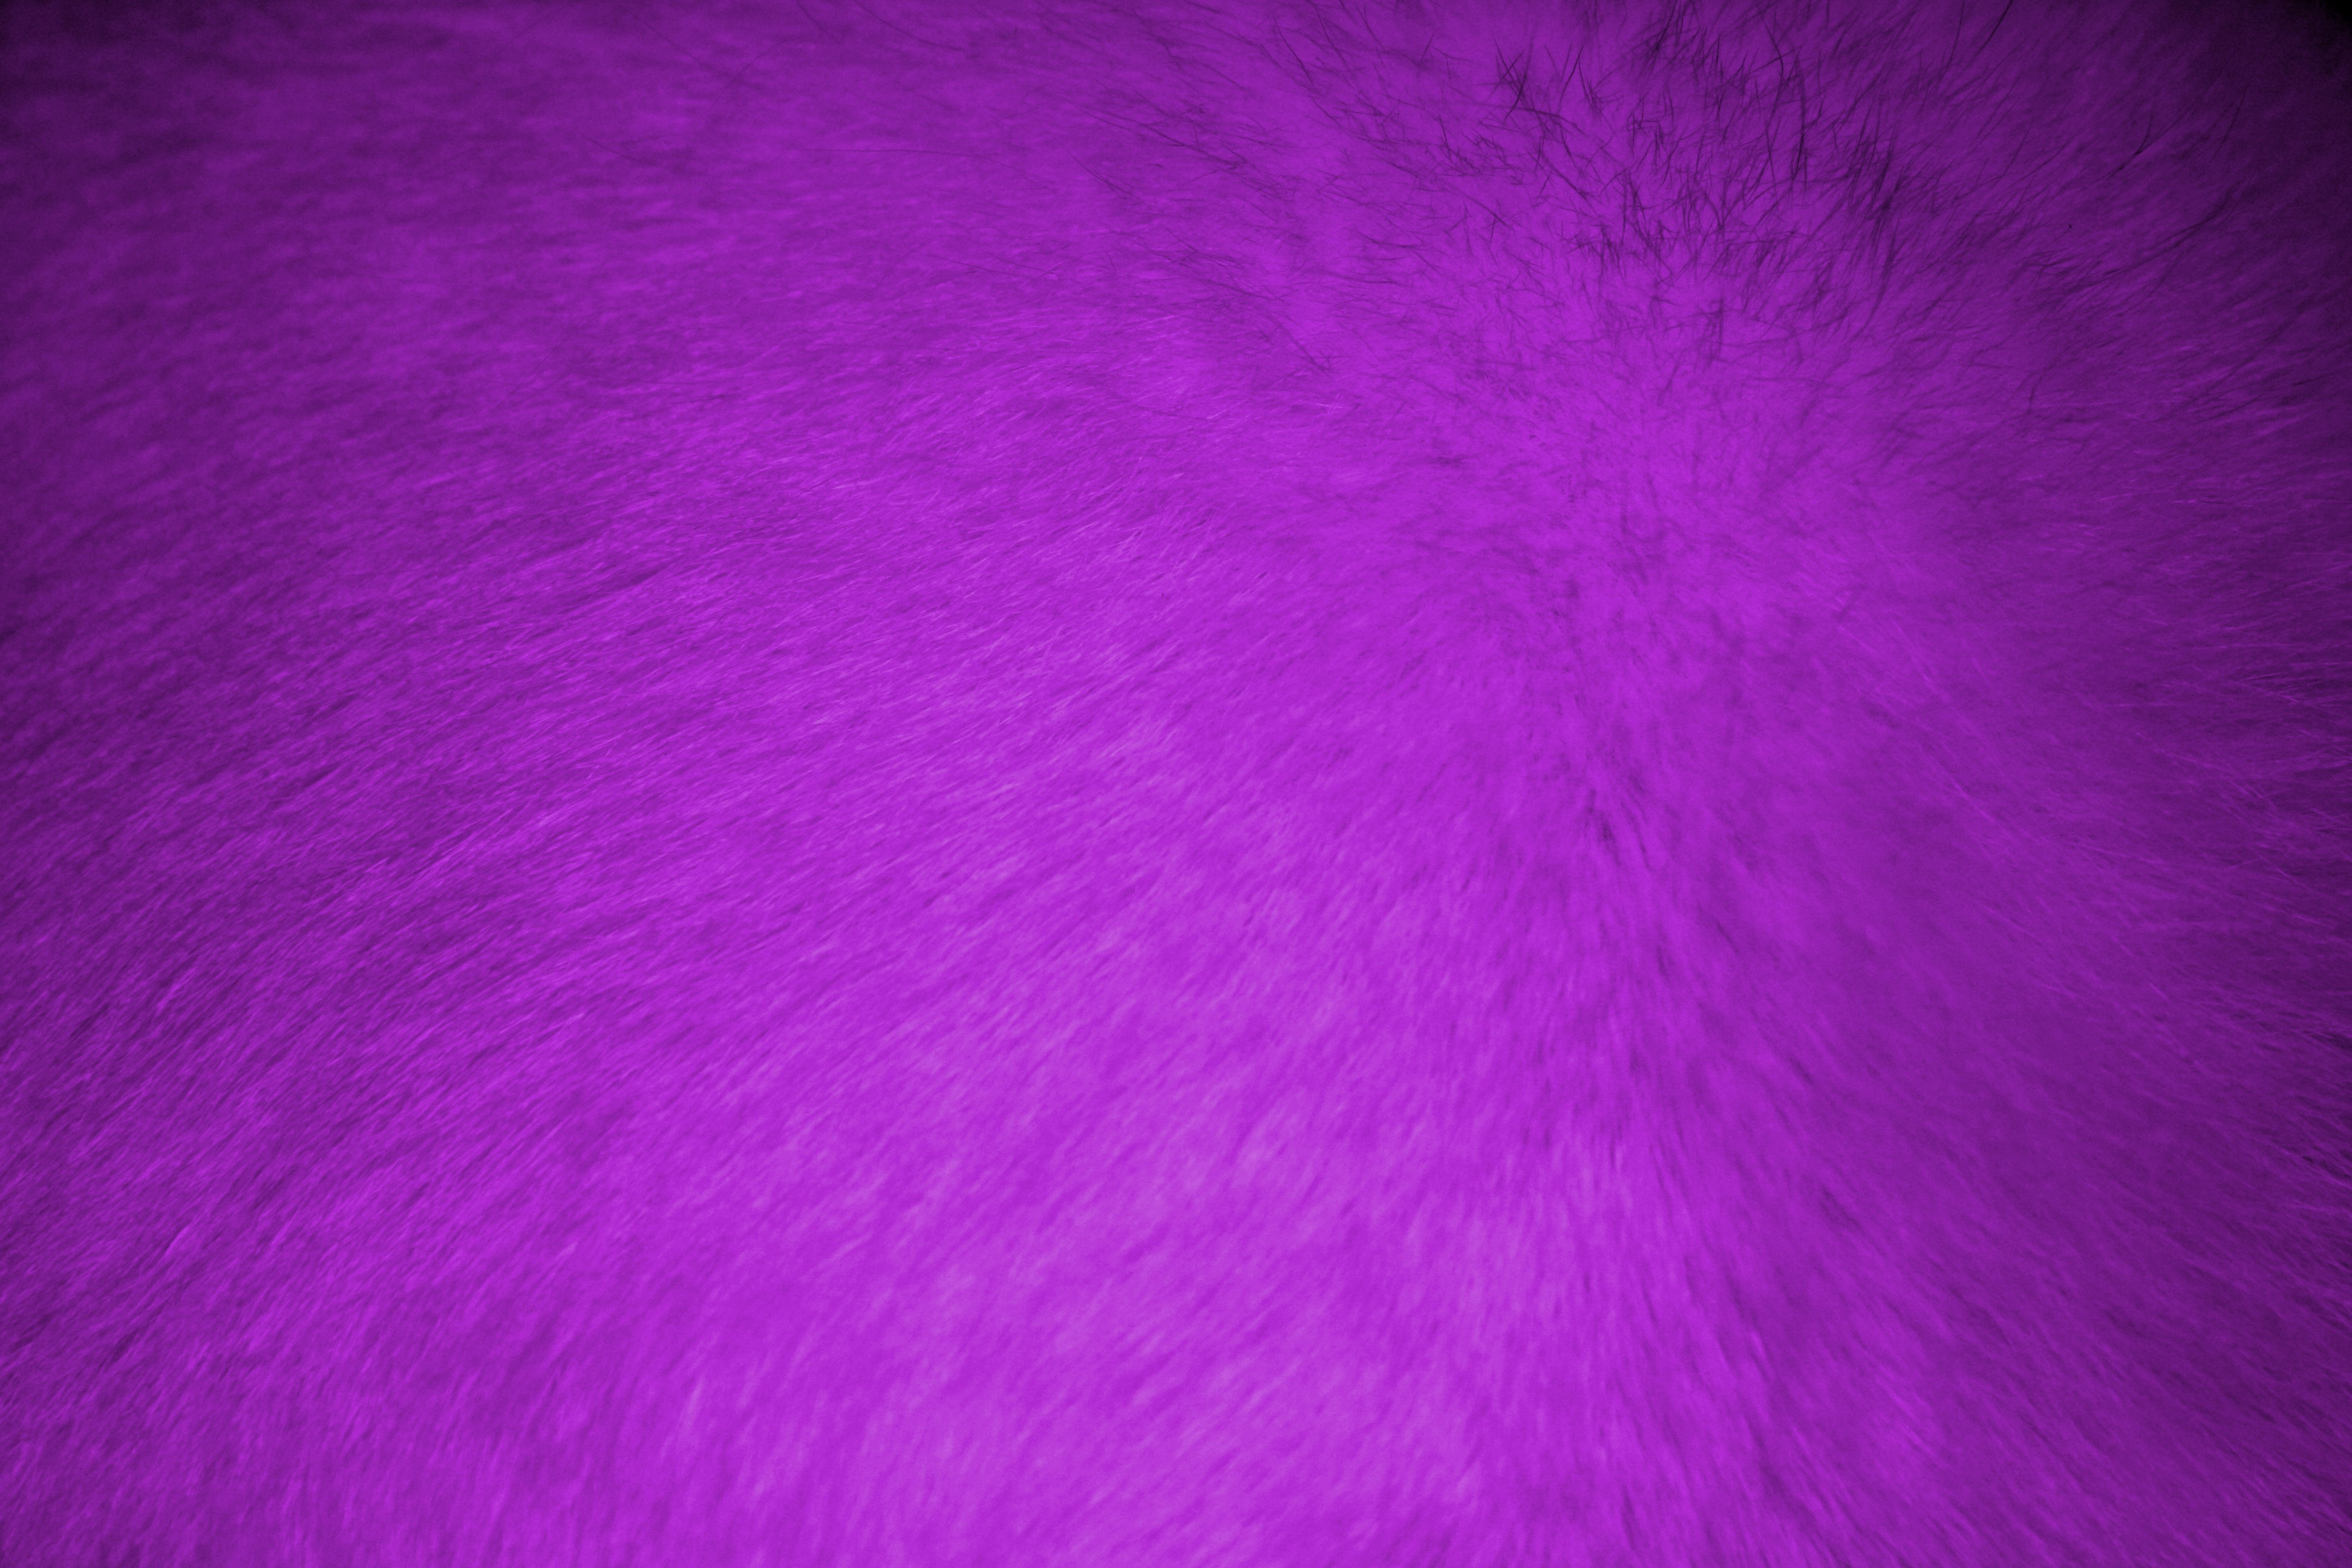 Purple Fur Texture   High Resolution Photo   Dimensions 3888 3888x2592